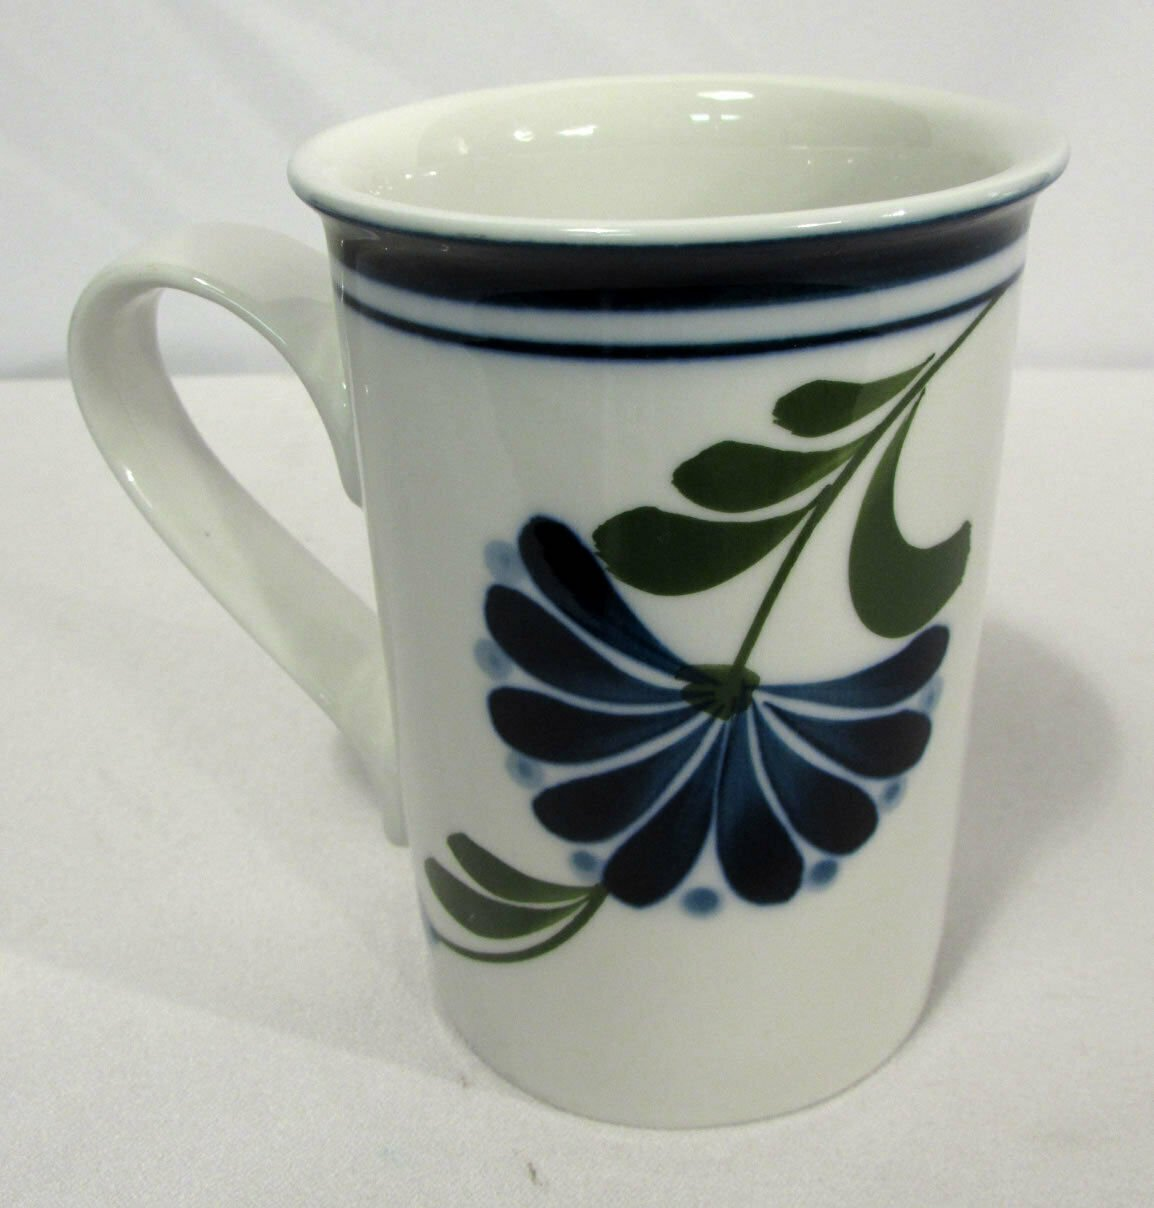 Sage Song by Dansk Mug (1) Blue Band, Flowers, Dots, Green Leaves Discontinued